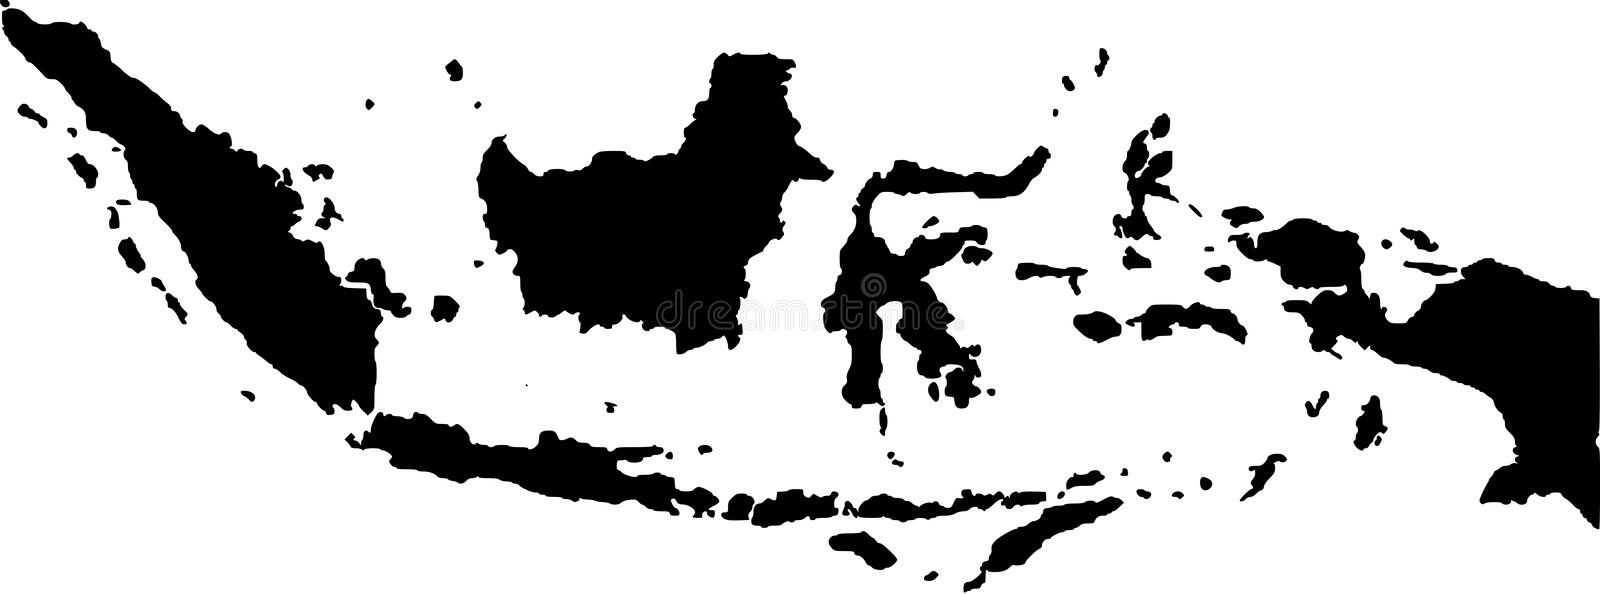 Vector map of indonesia royalty free illustration